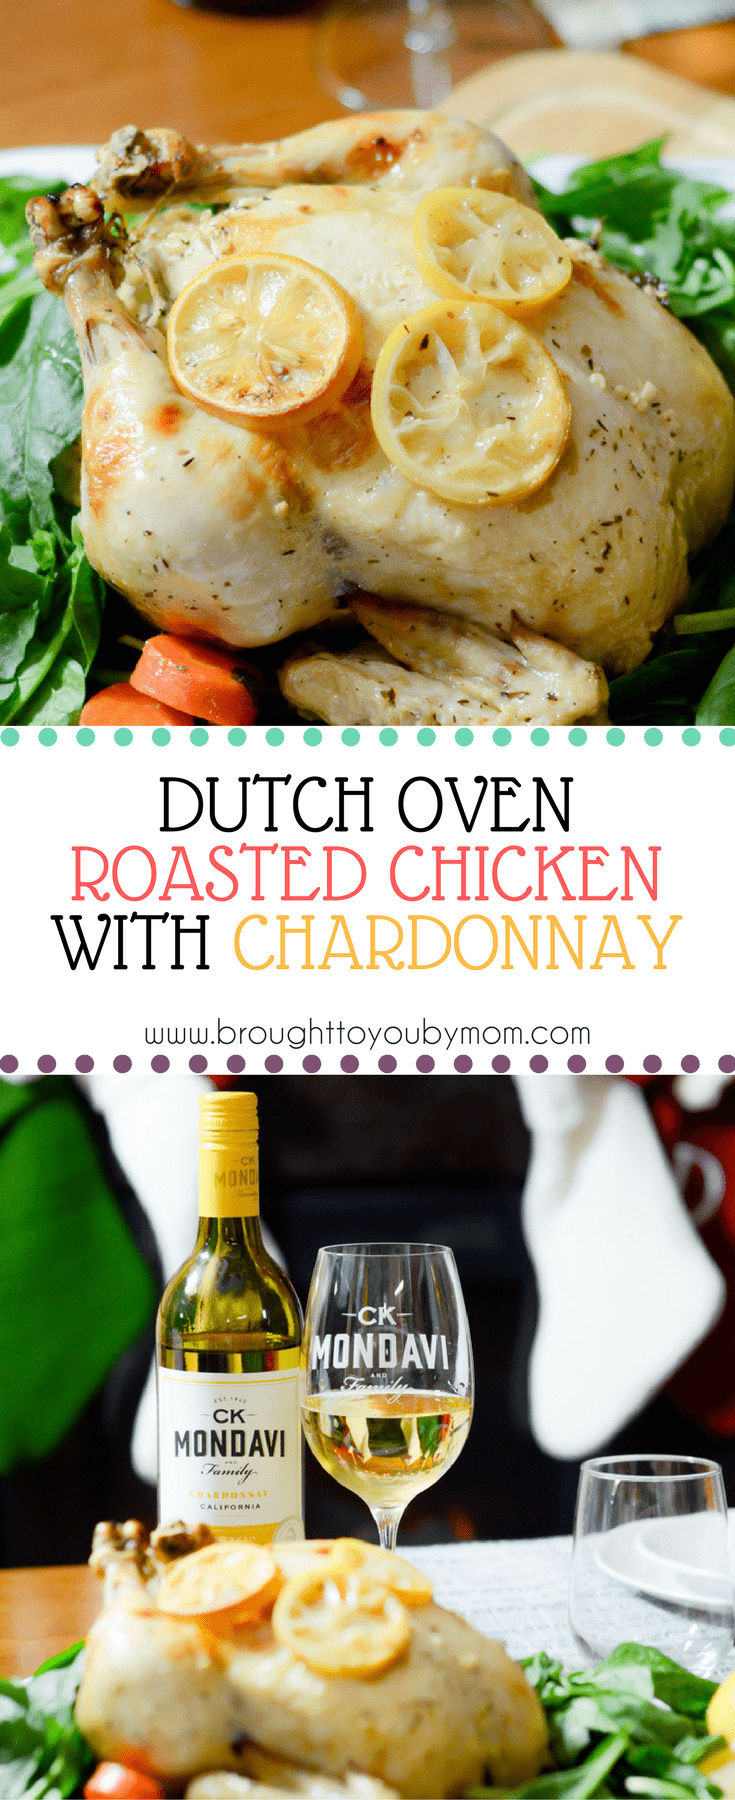 Make Dutch Oven Roasted Chicken For A Great Holiday Meal